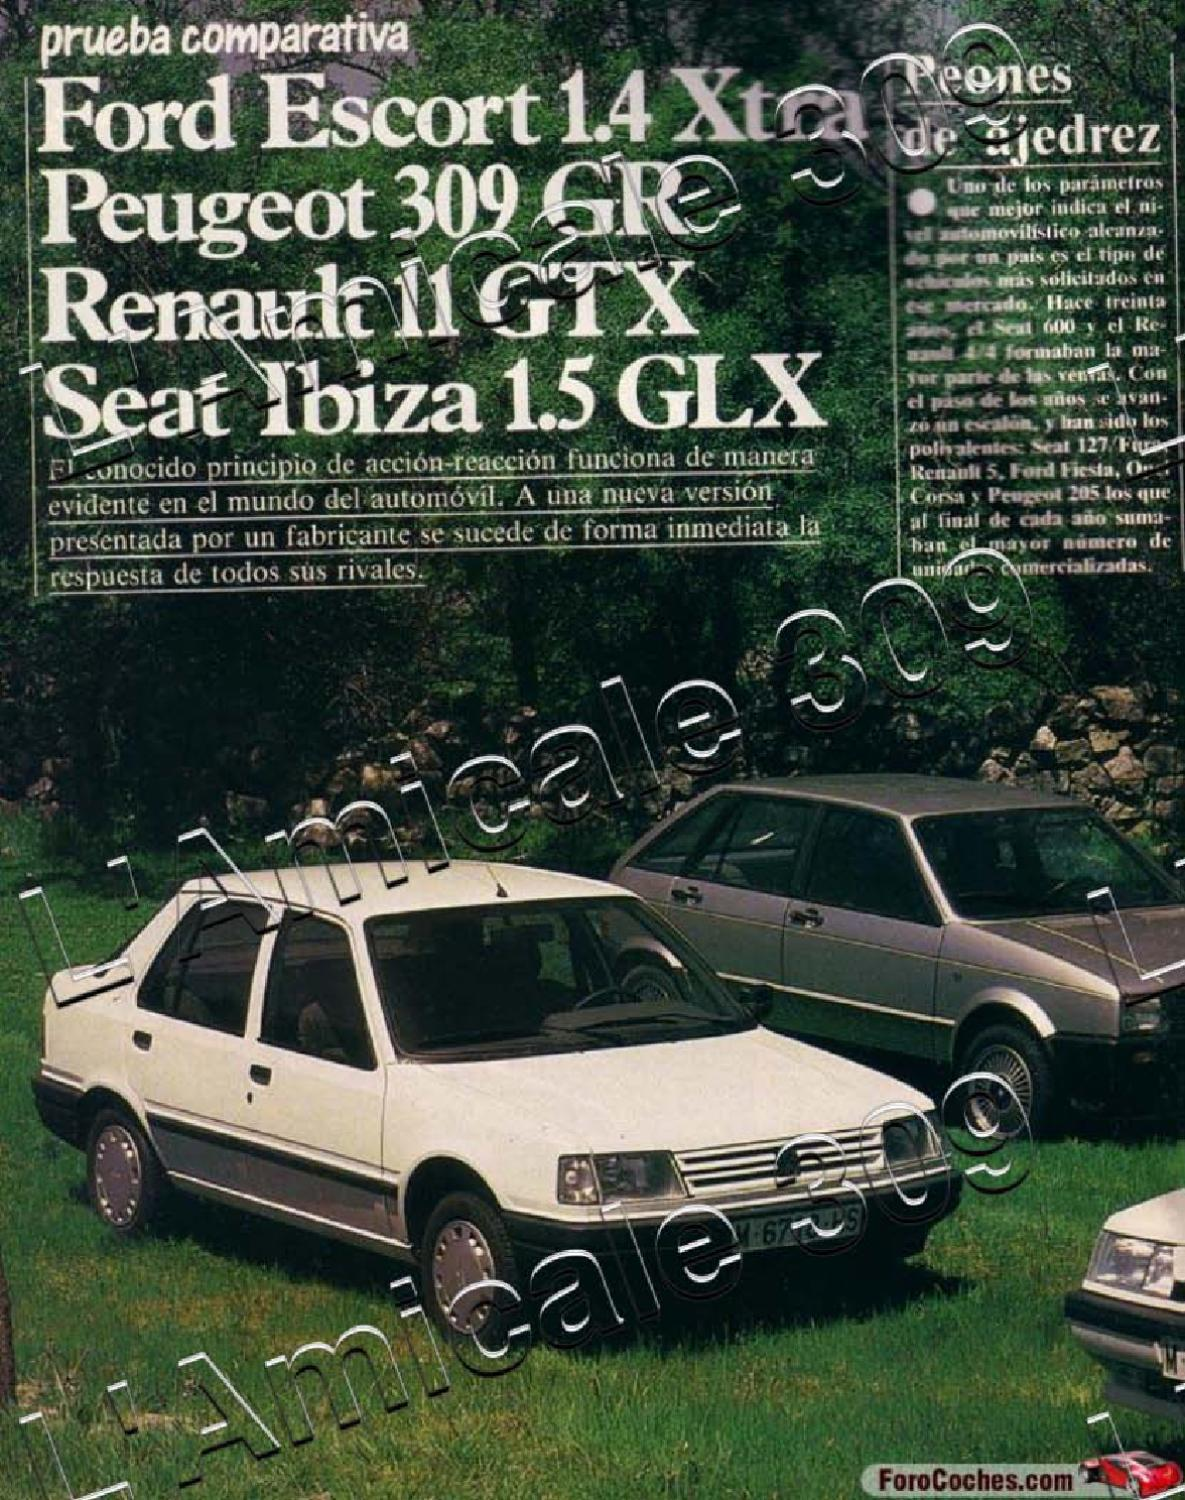 1986 Spain Autopista Prueba Comparativa Ford Escort Peugeot 309 Renault 11 Seat Ibiza By L Amicale 309 Issuu